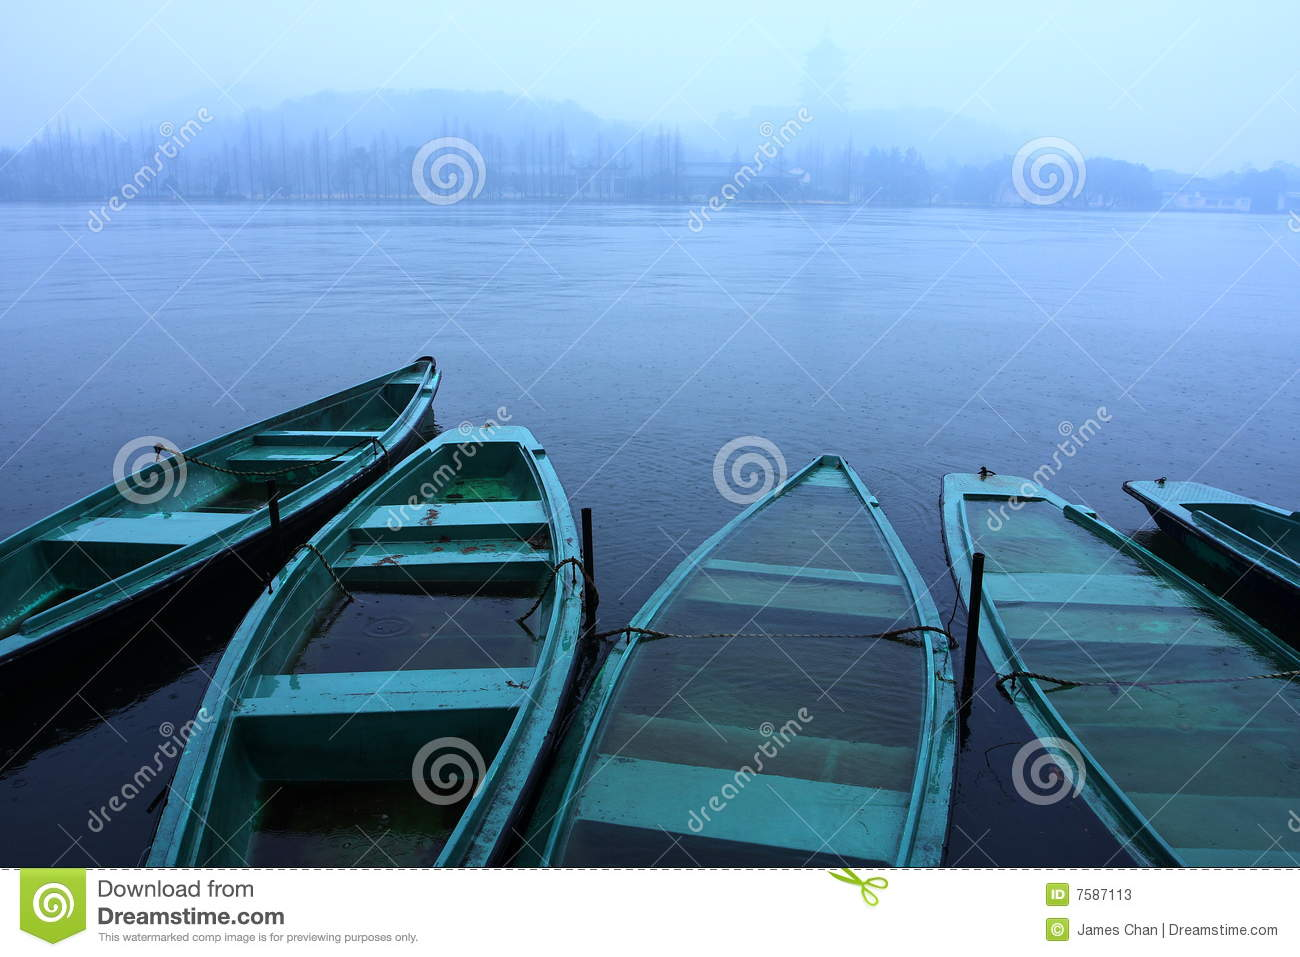 boats in the lake raining